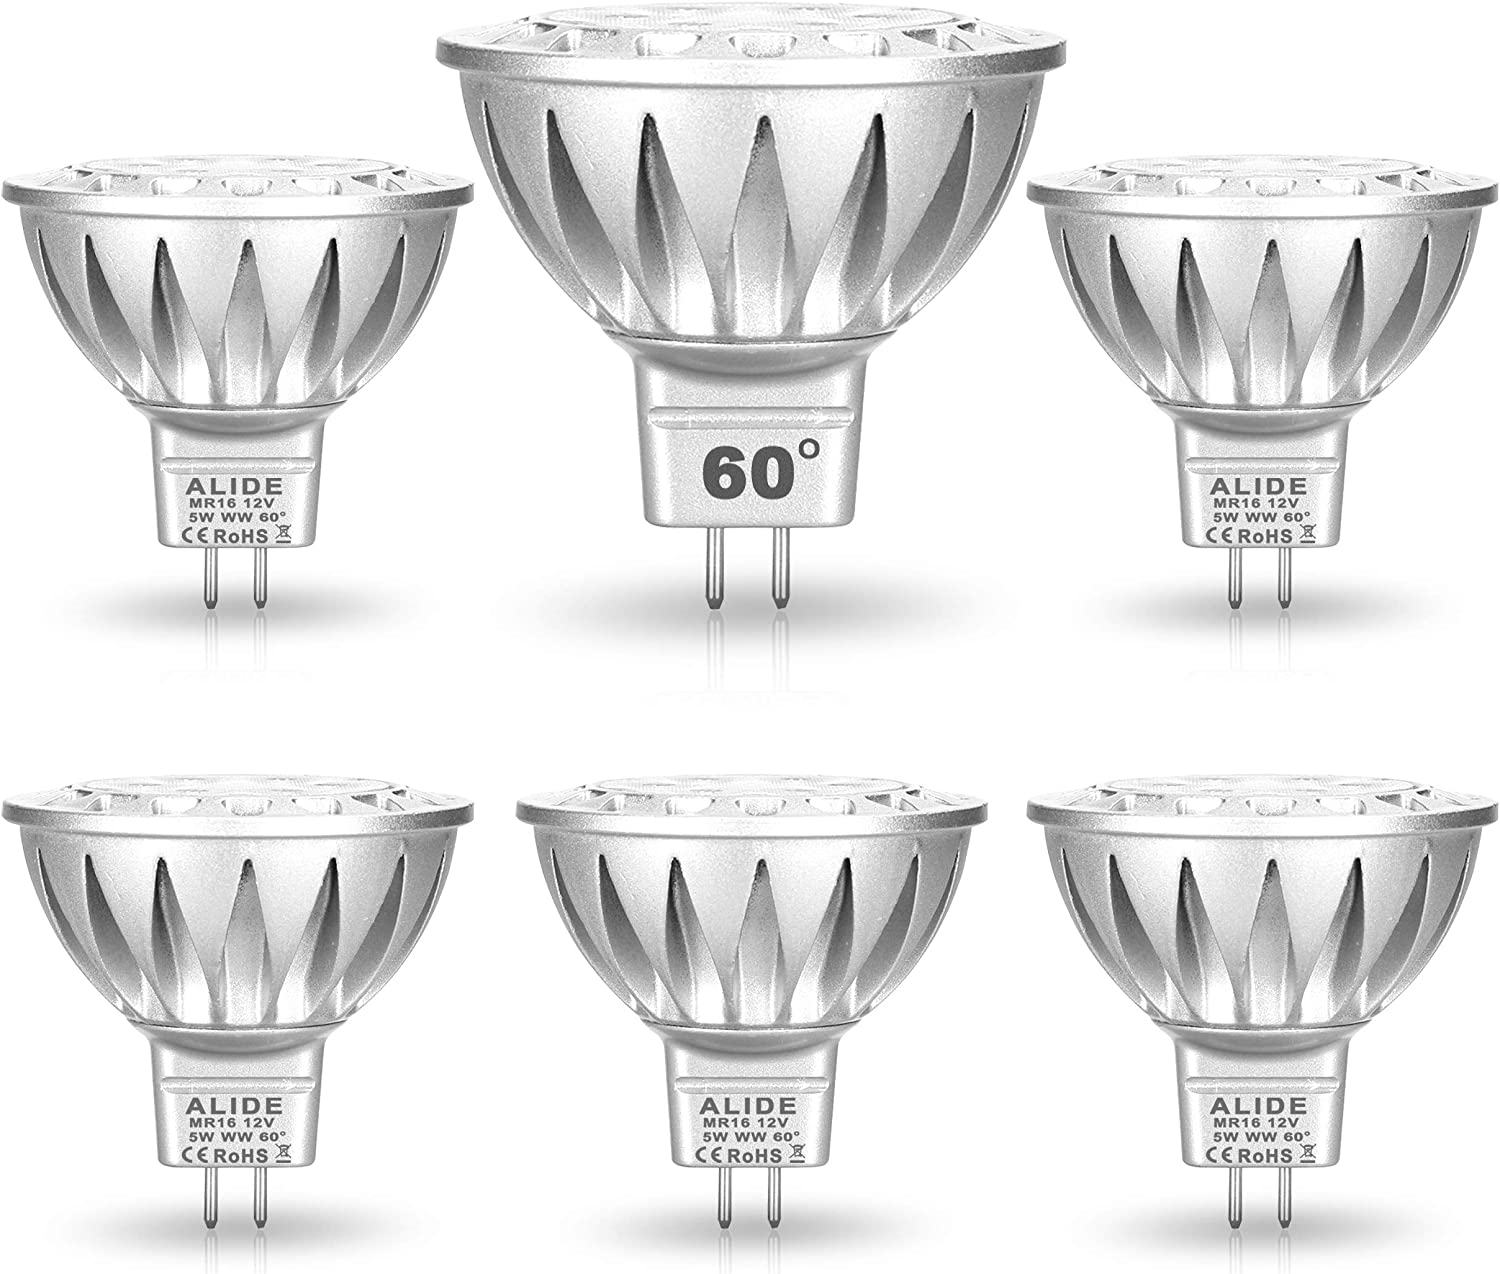 ALIDE MR16 Led Bulbs 60° (60 Degree)Wide Beam Angle,5W Replace 20W 35W Halogen,2700K Soft Warm White,Low Voltage 12volt MR16 GU5.3 Bulb Spotlights for Track Recessed Landscape Lighting,450lm,6 Pack